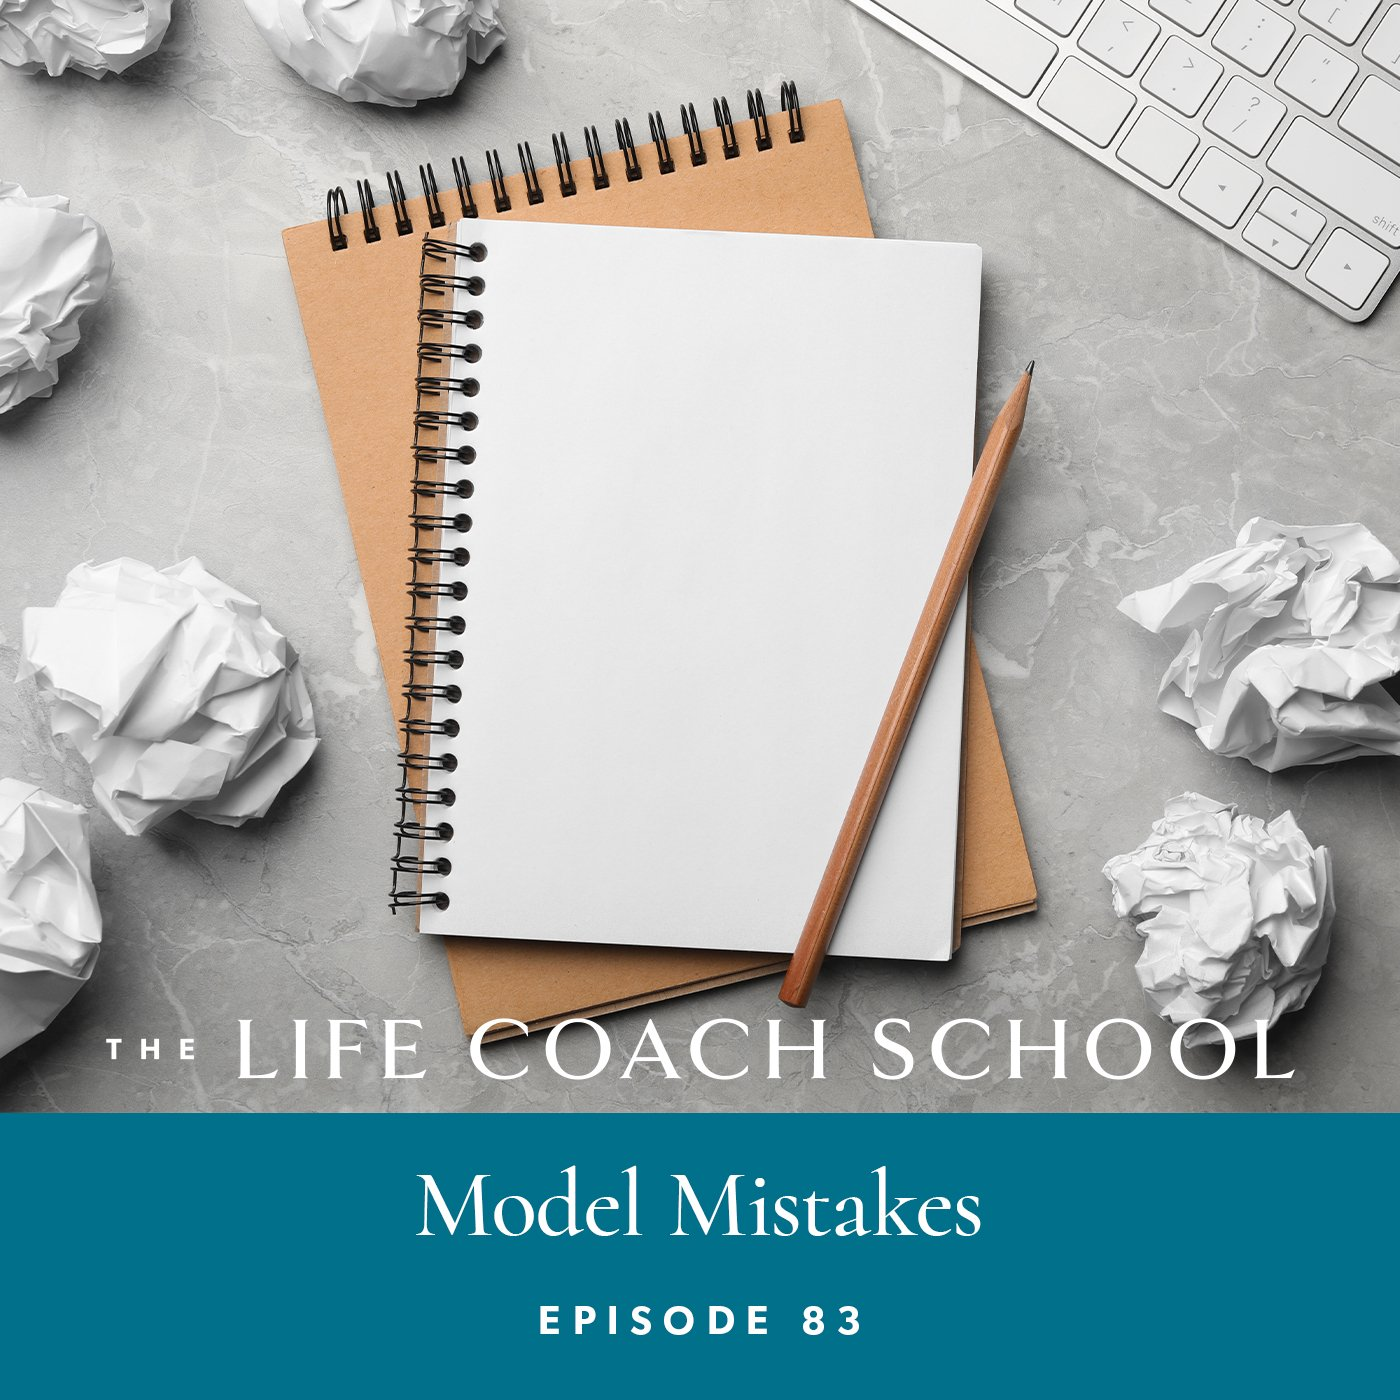 The Life Coach School Podcast with Brooke Castillo | Episode 83 | Model Mistakes